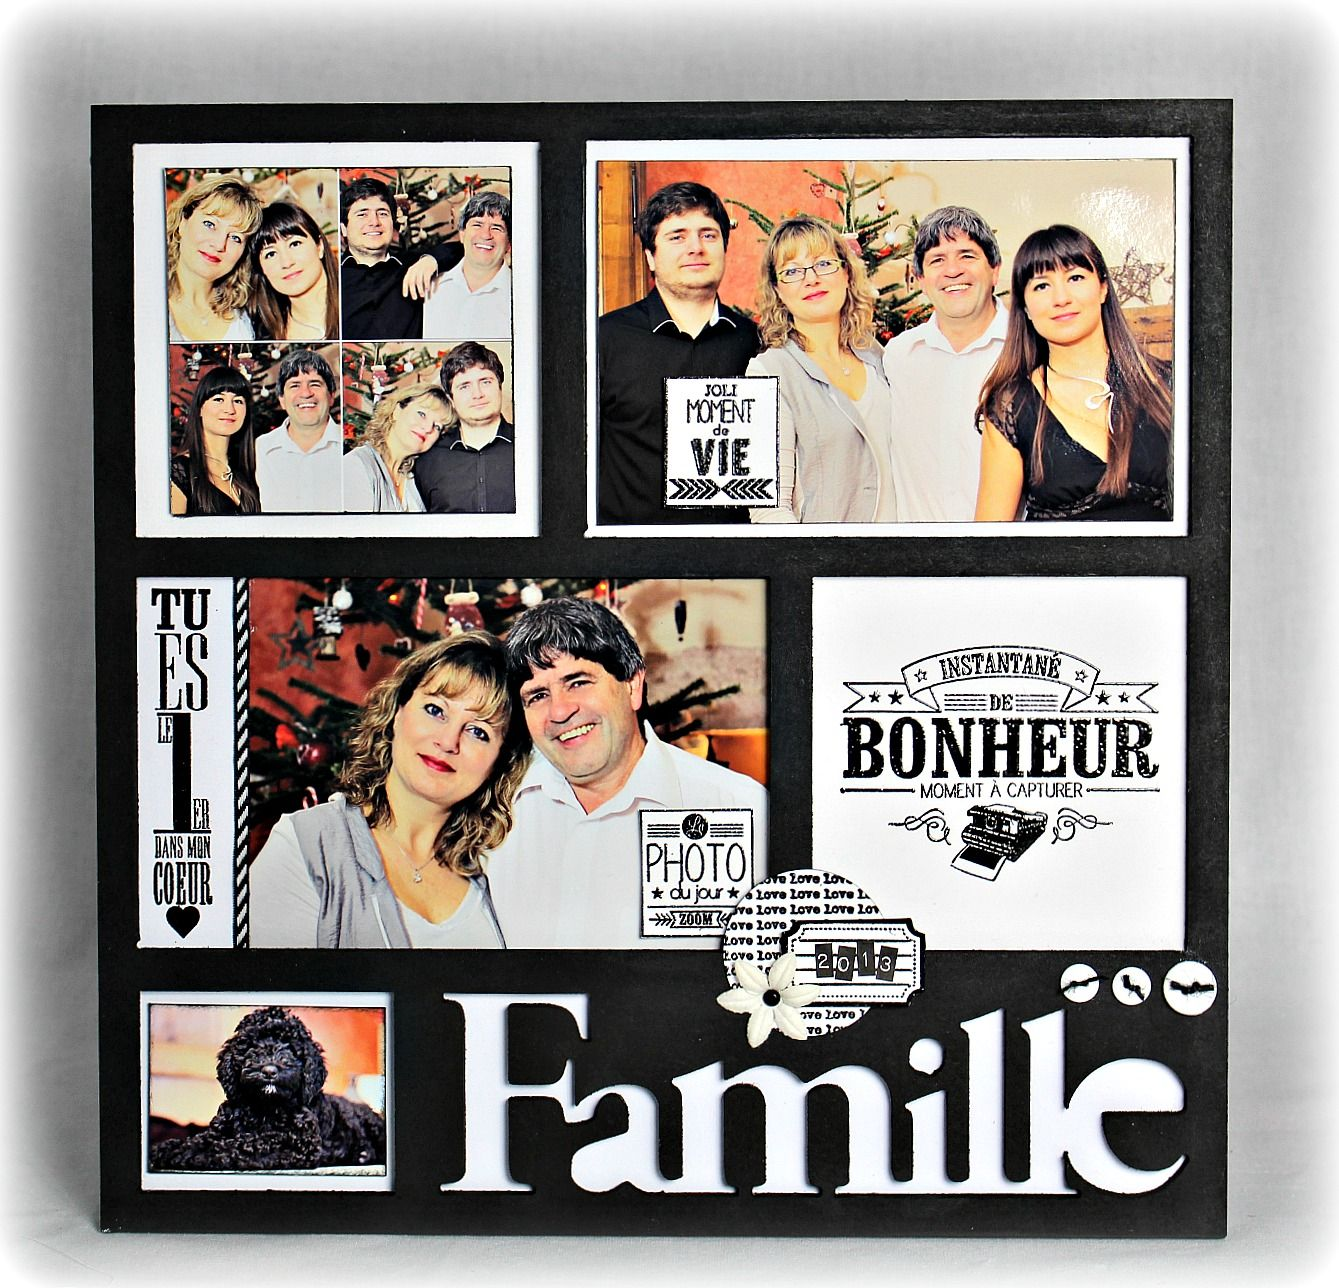 cadre famille 2013 scrapbooking pinterest scrapbooking scrap and album photos. Black Bedroom Furniture Sets. Home Design Ideas